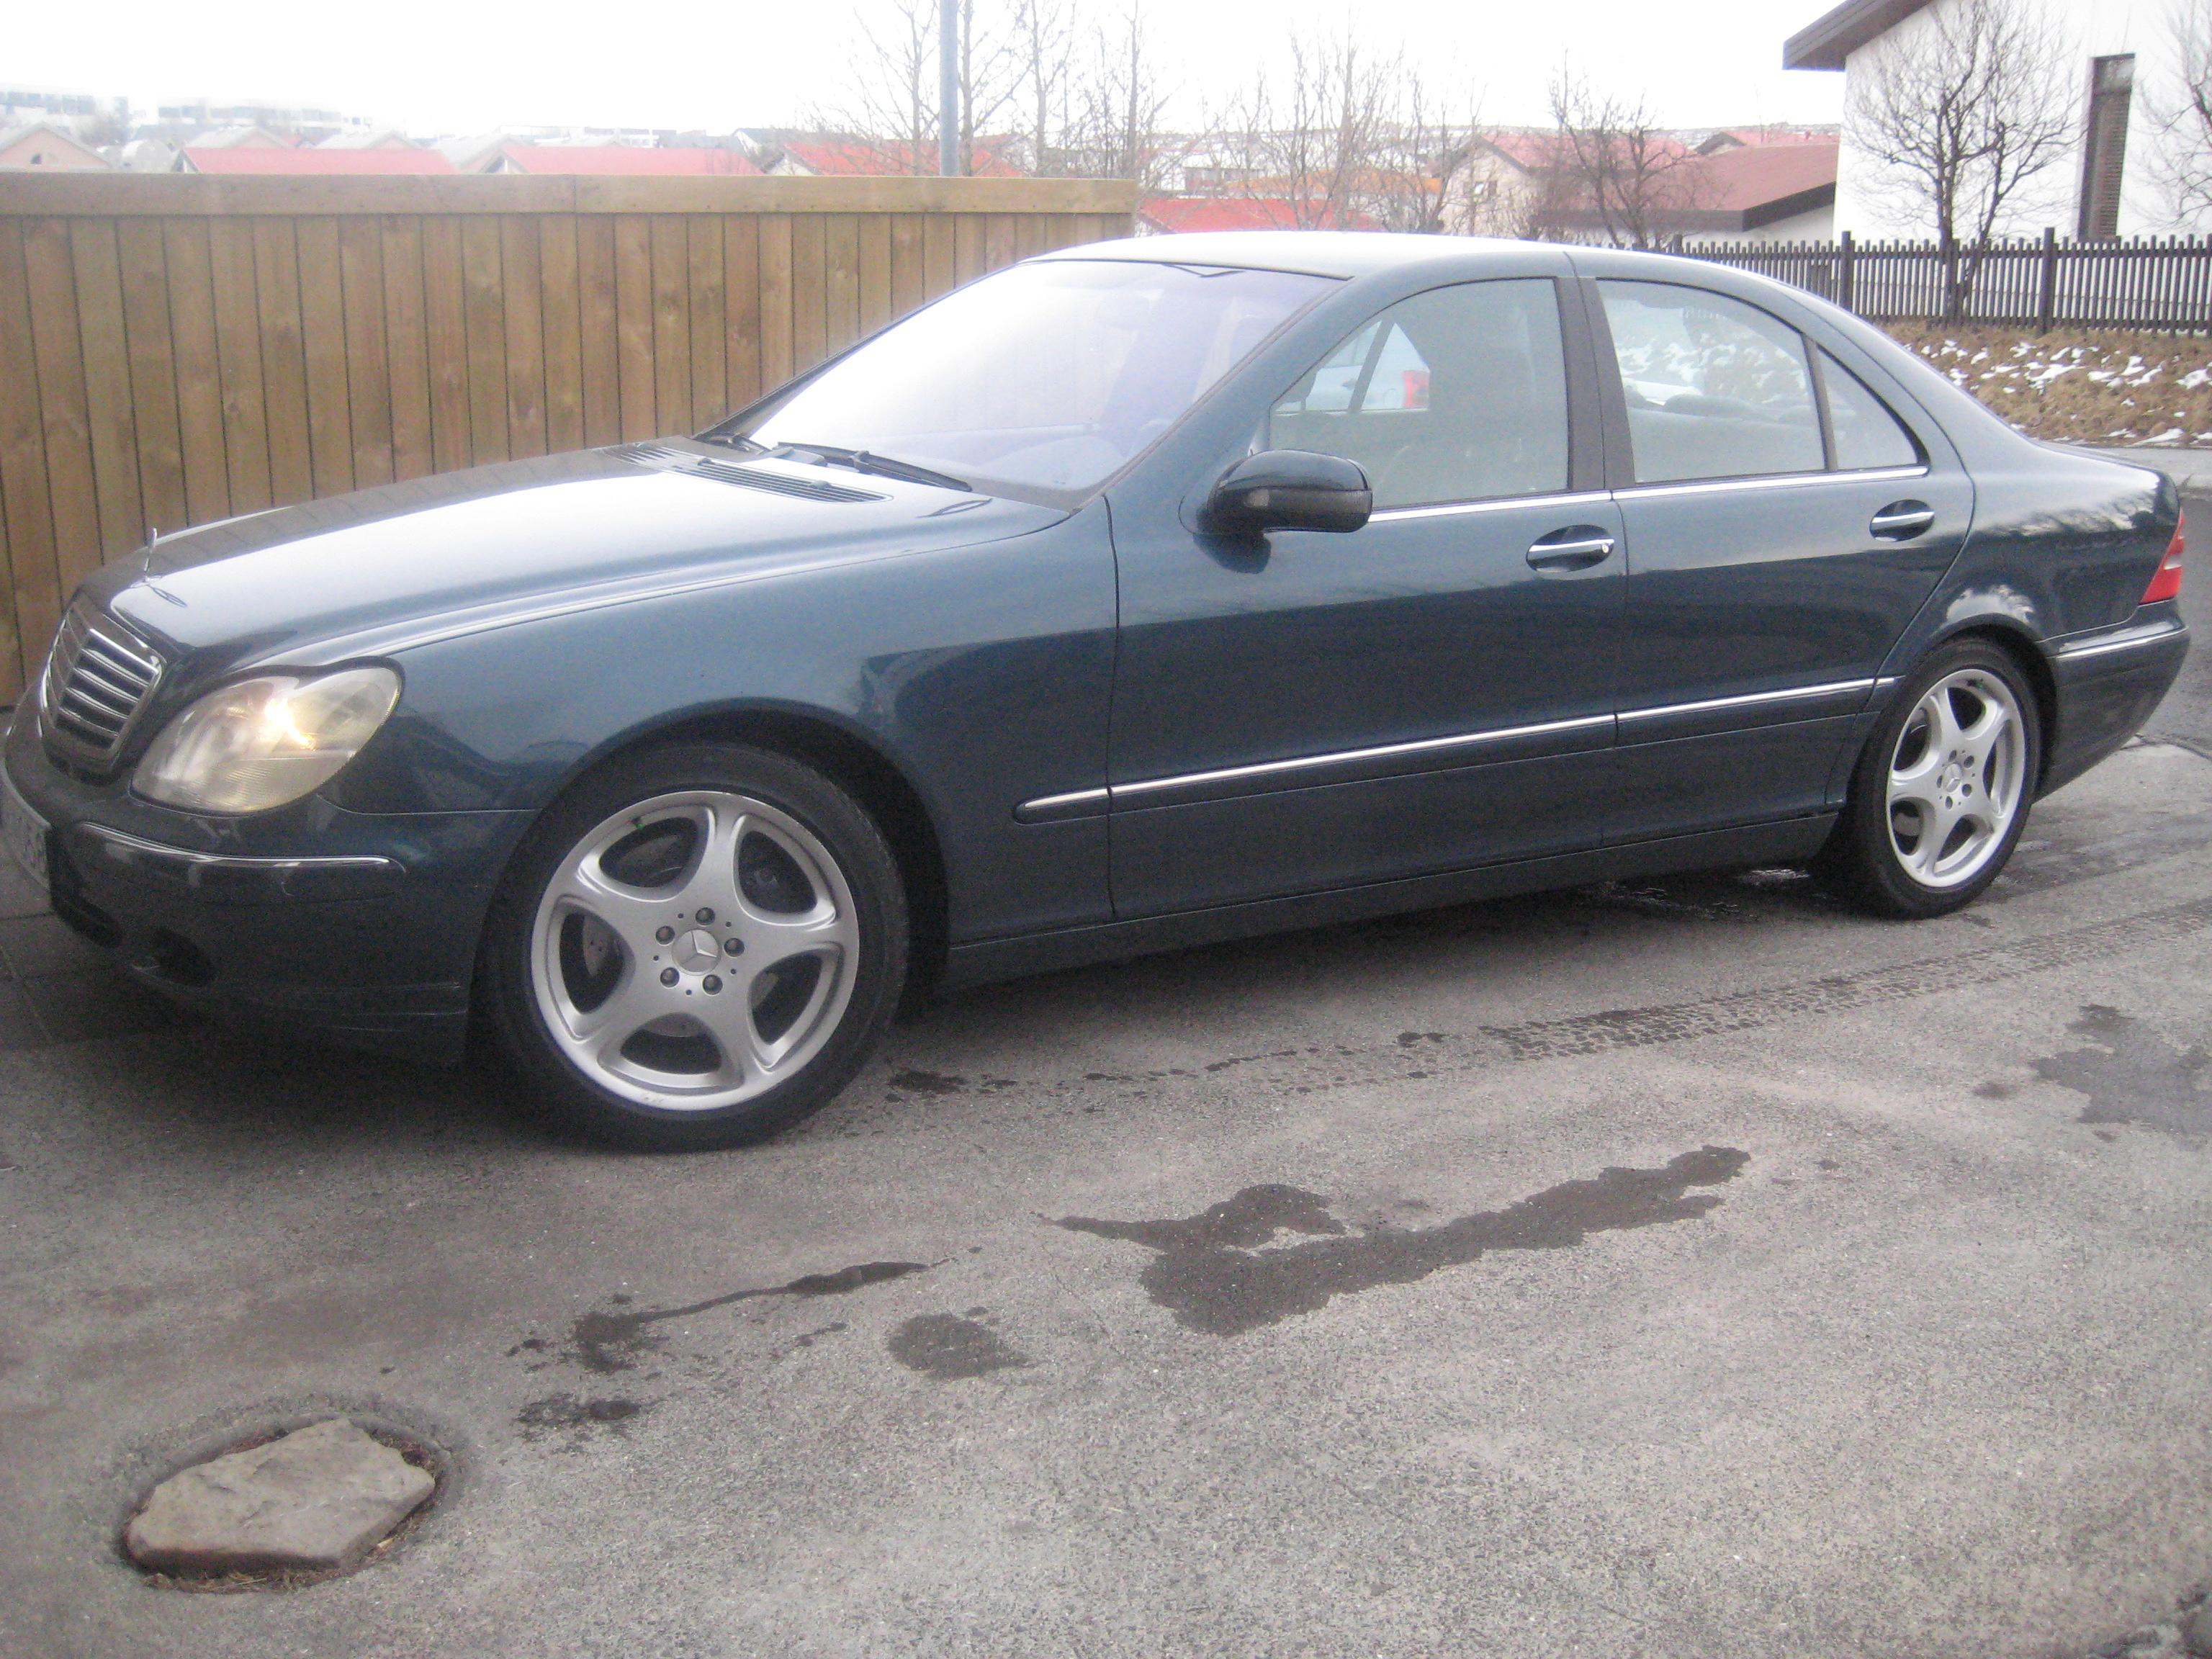 Iceland1960 2001 mercedes benz s class specs photos for Mercedes benz s class 2001